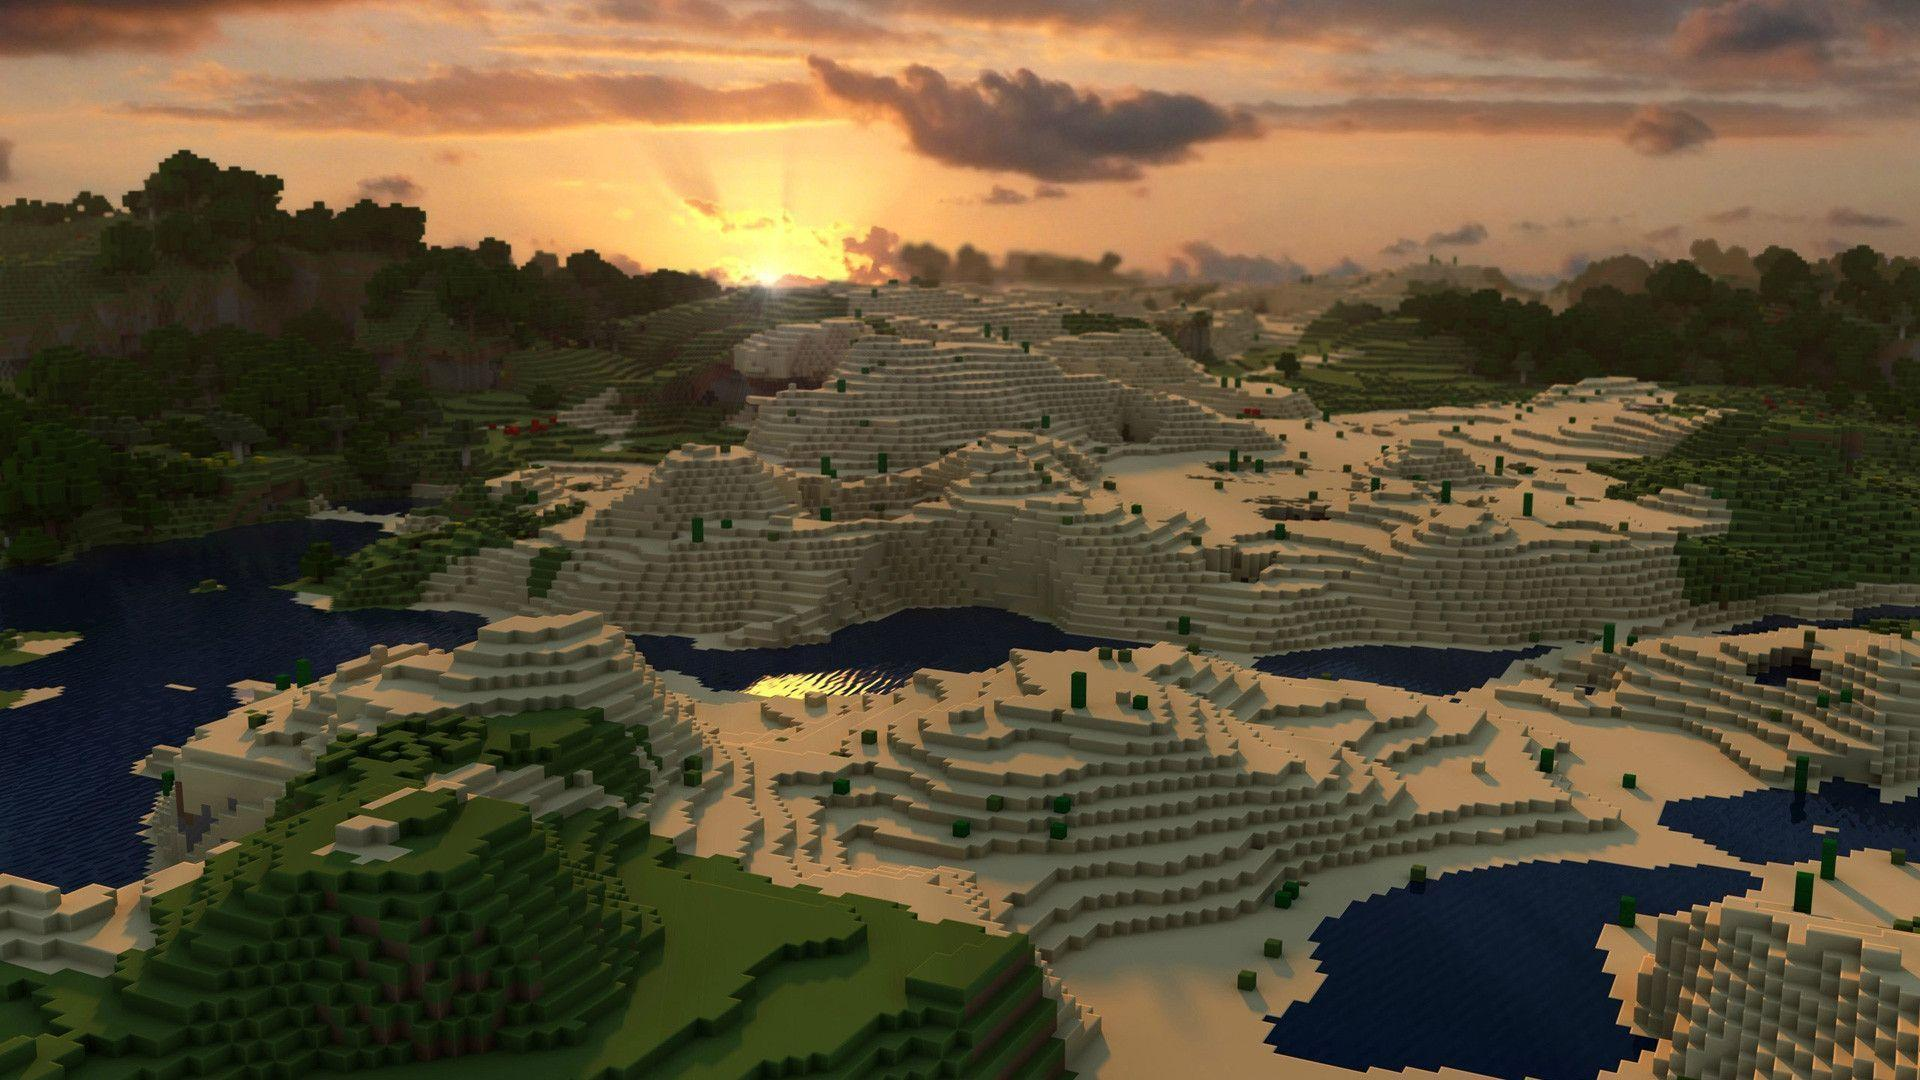 minecraft 1920x1200 wallpaper high - photo #34